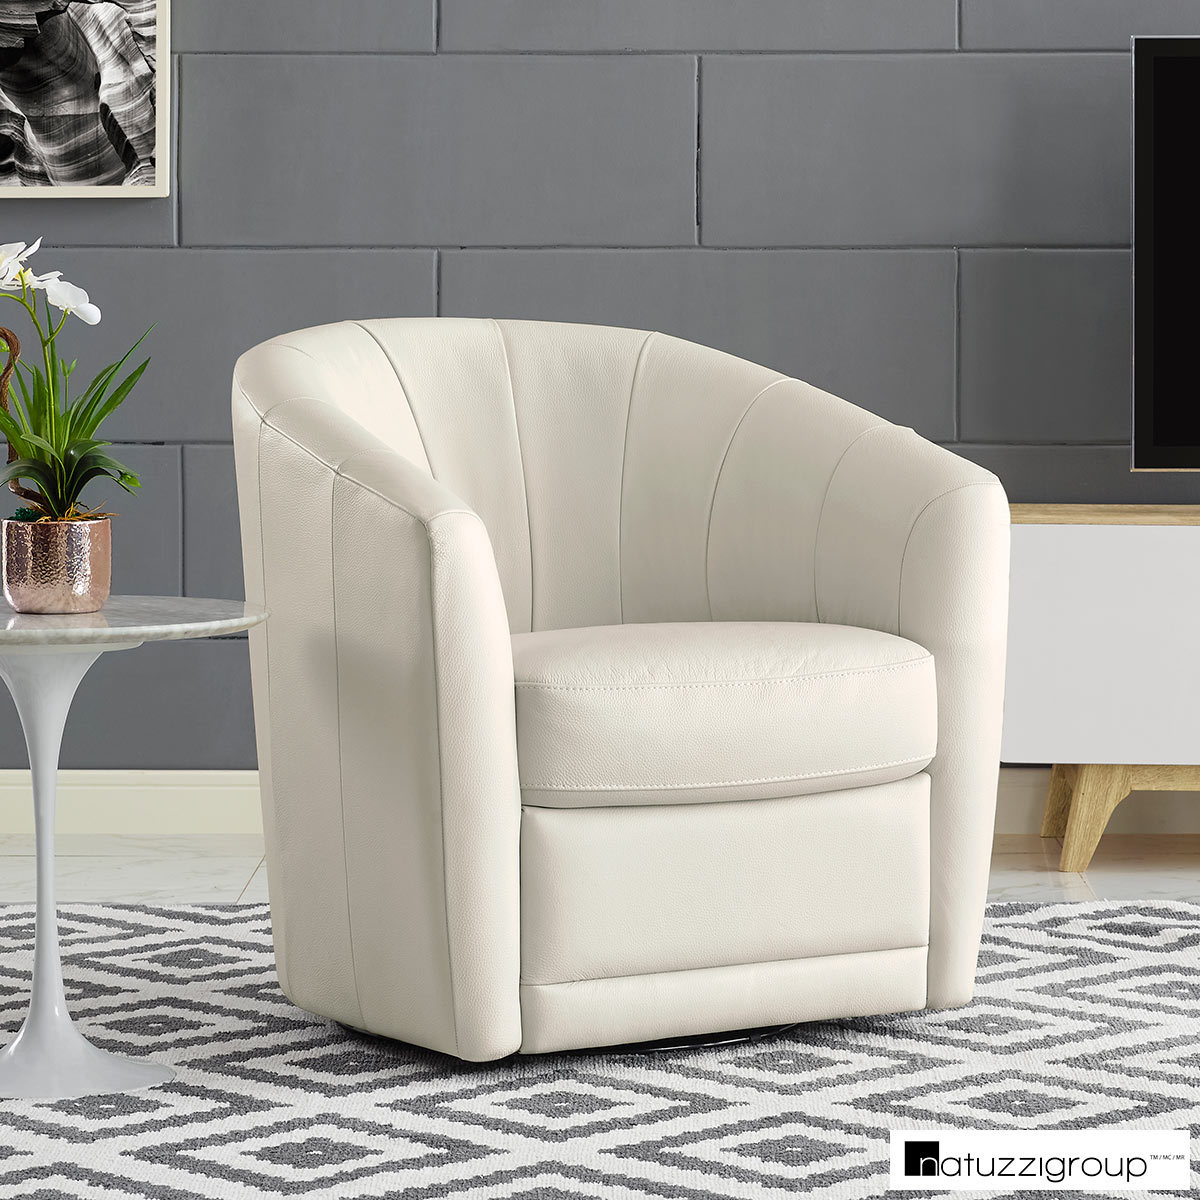 Accent Chairs At Costco Natuzzi Cream Leather Swivel Accent Chair Costco Uk